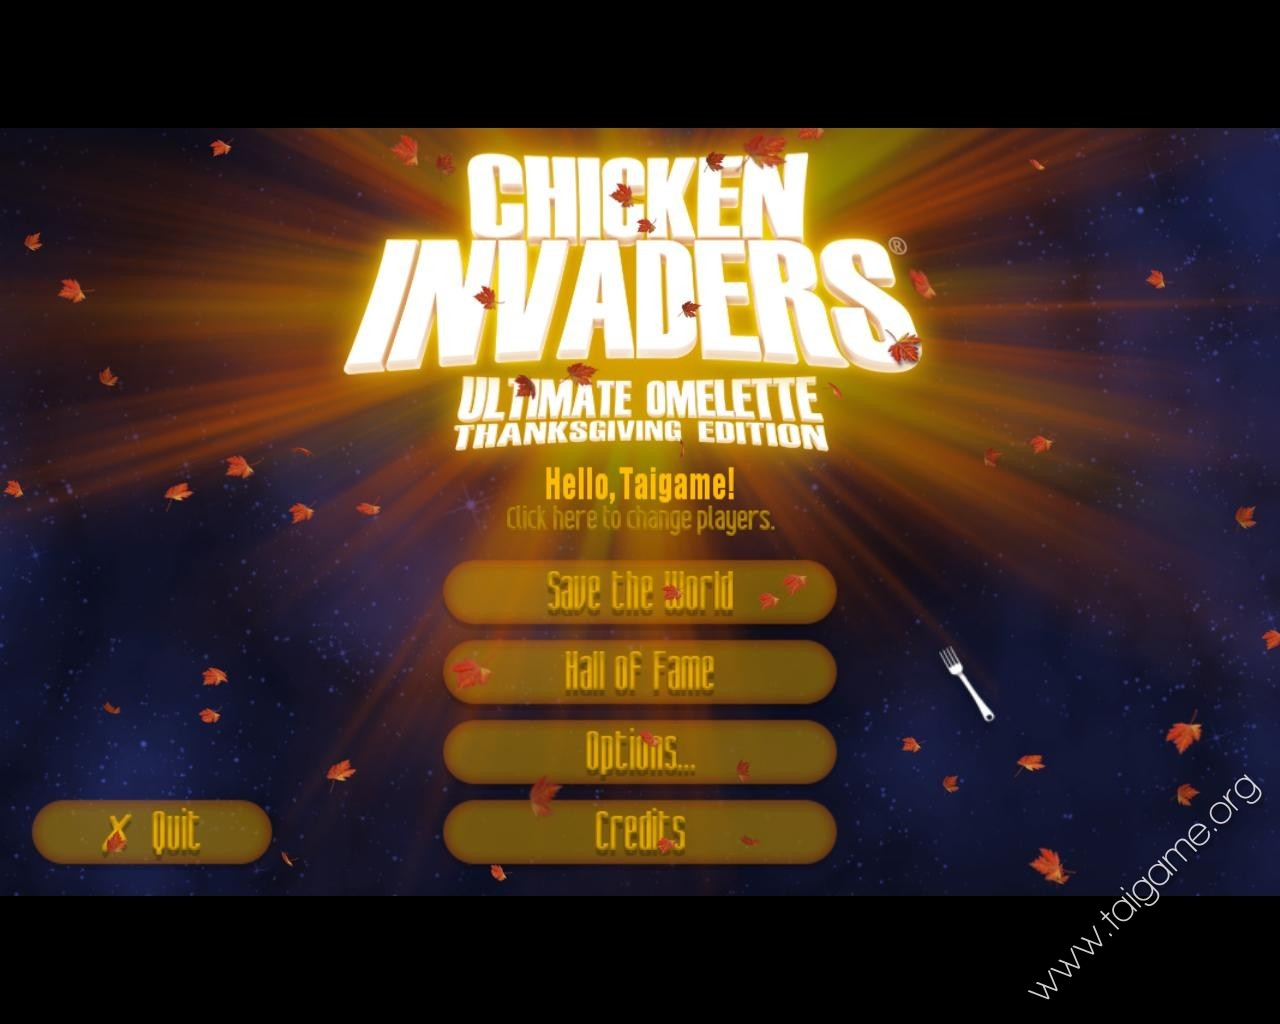 Chicken invaders 4 ultimate omelette thanksgiving edition free.